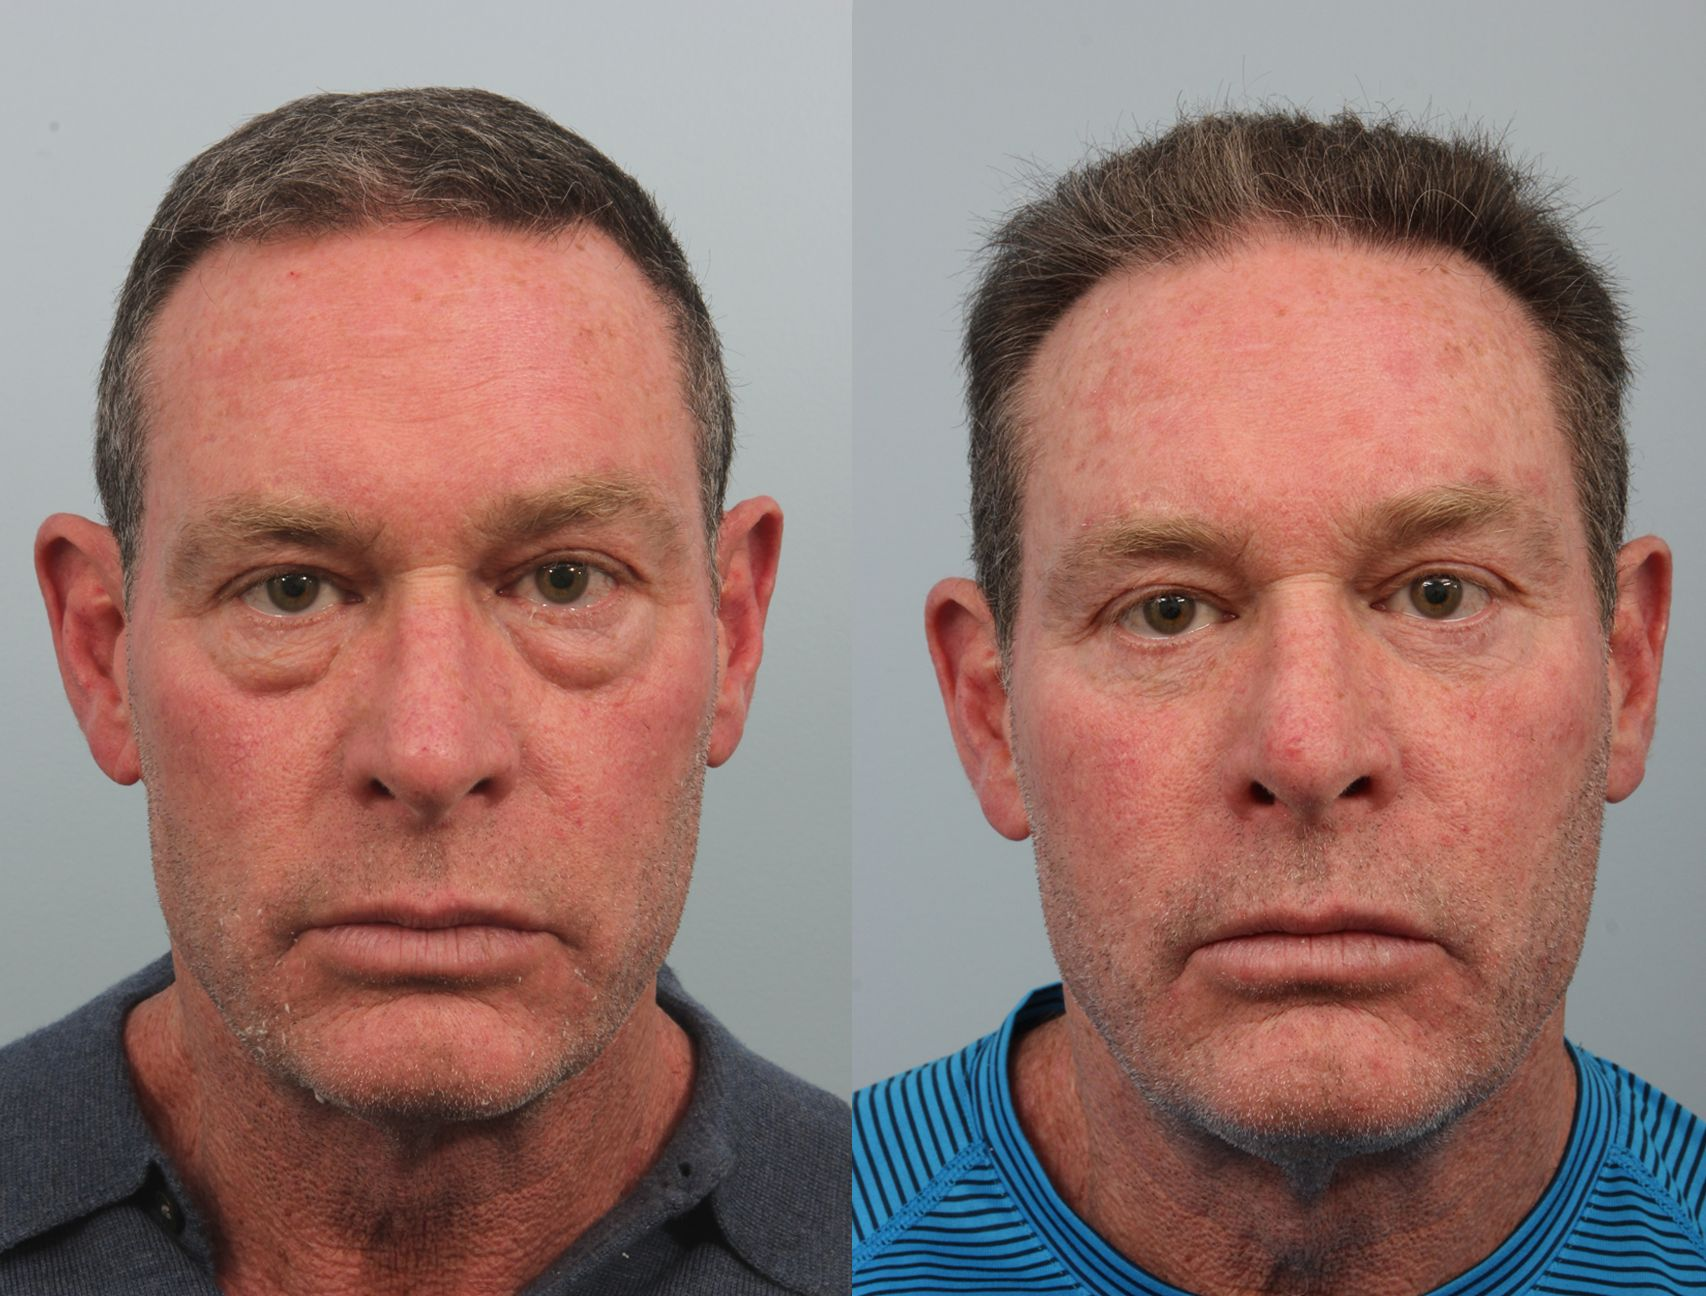 This is a middle aged business man who is under a considerable amount of stress with his businesses. He was looking for an opinion and Dr. Williams recommended a blepharoplasty to his lower eyelids along with fat grafting. Fat transfers were also placed in his mid-face area. He is seen here a year out and is thrilled with his overall results.  Real Patient Results: http://www.williamsfacialsurgery.com/photo-gallery/blepharop #DrEdwinWilliams #EyelidSurgery #undereyebags #Blepharoplasty